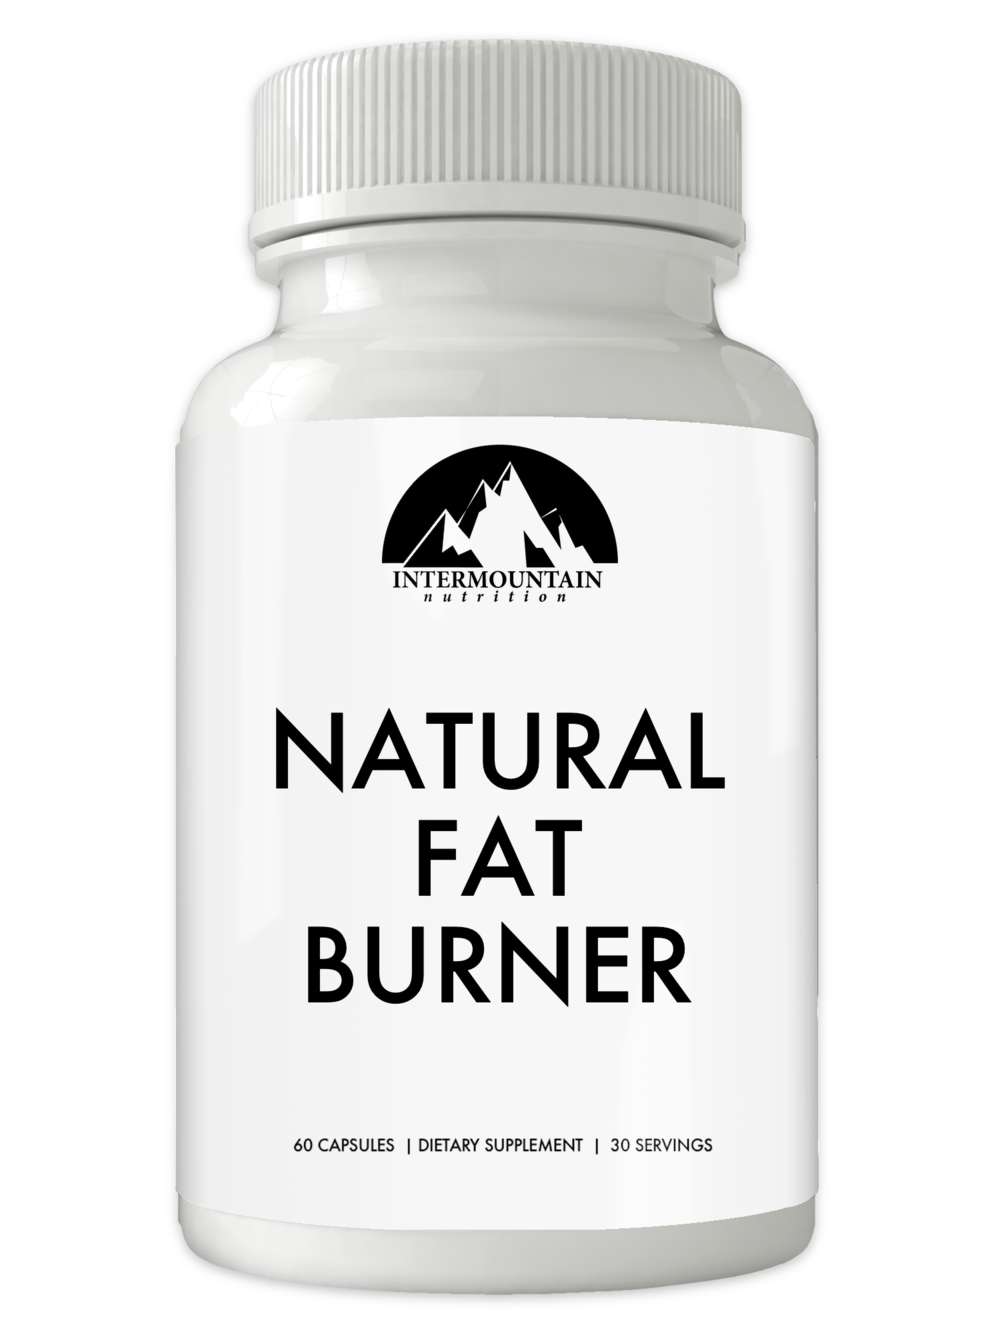 IMN - NATURAL FAT BURNER.png